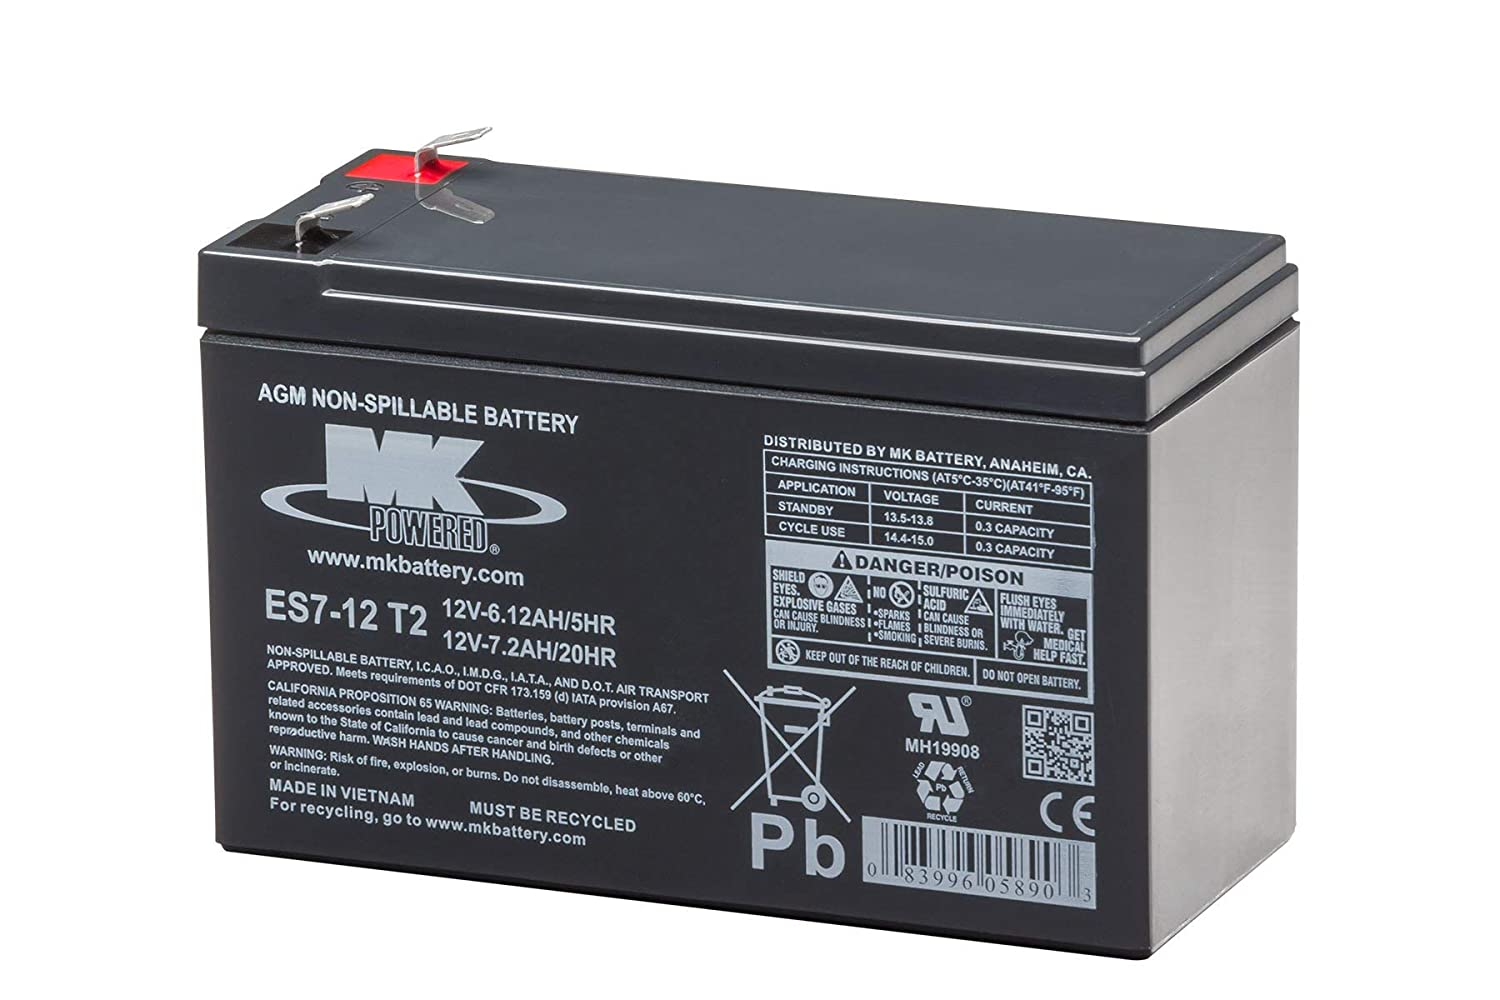 MK Battery ES7-12 T2 Maintenance-Free Rechargeable Sealed Lead-Acid Battery